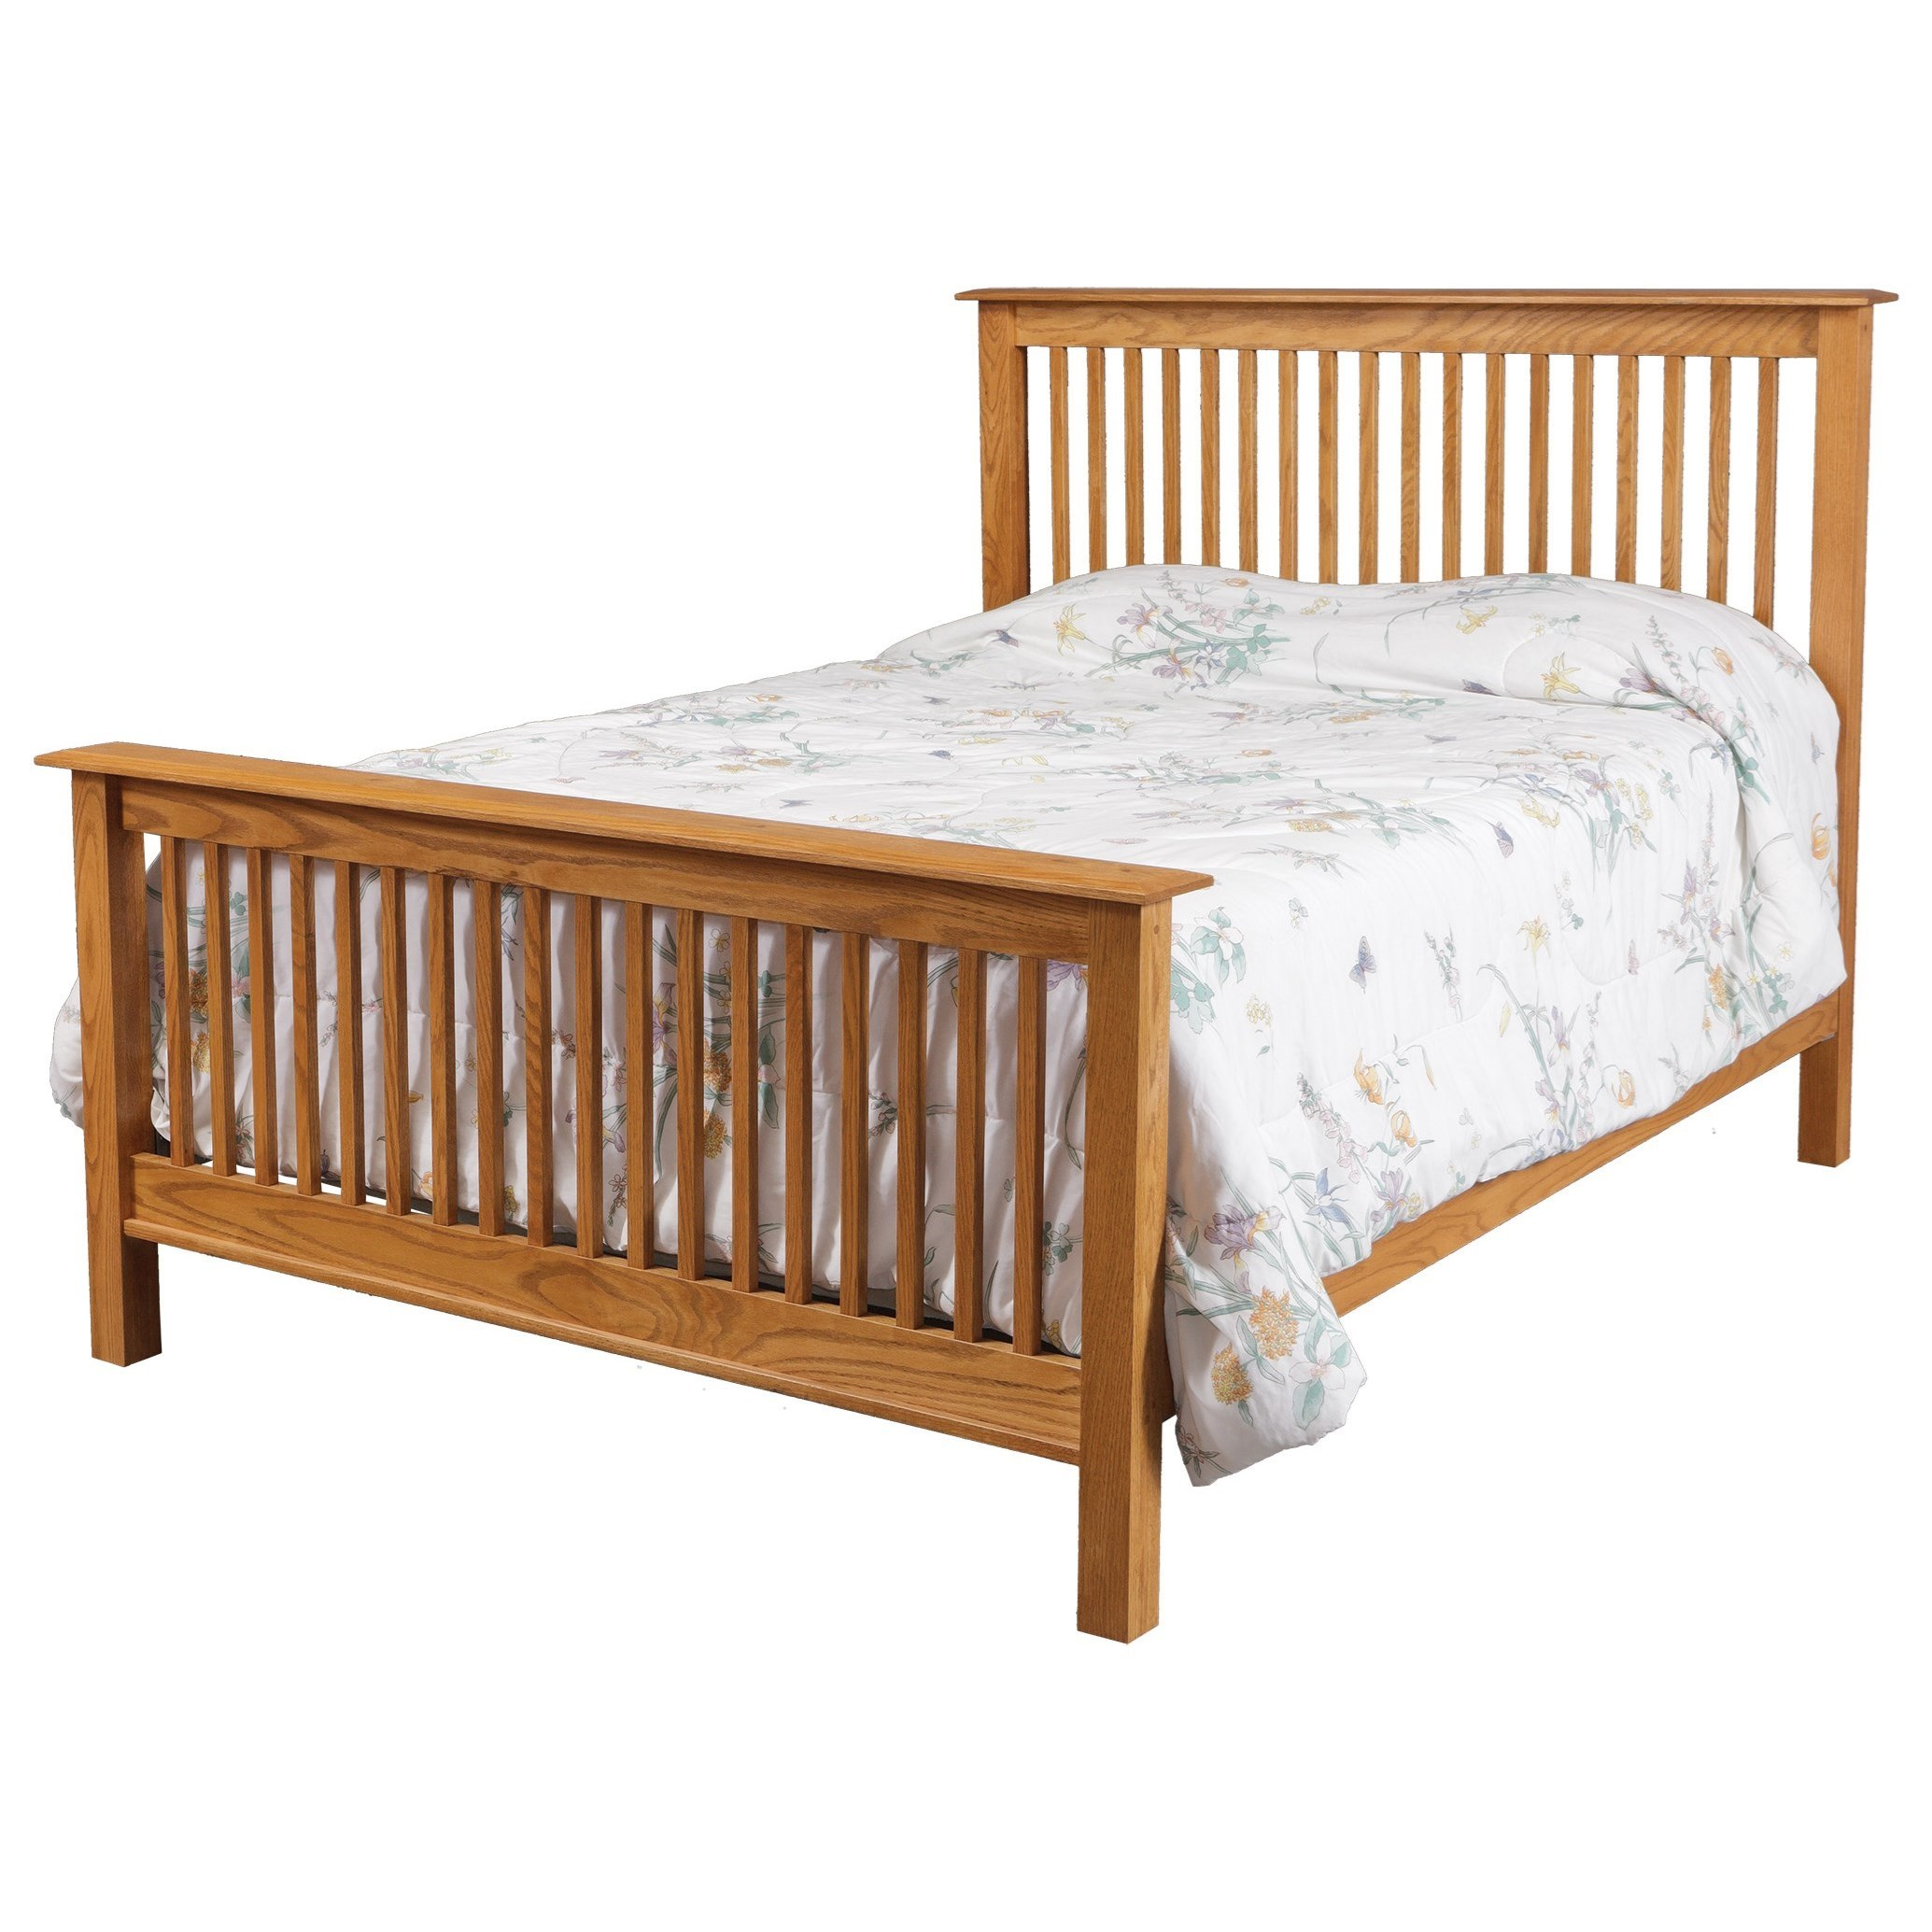 Simplicity King Bed by Daniel's Amish at H.L. Stephens